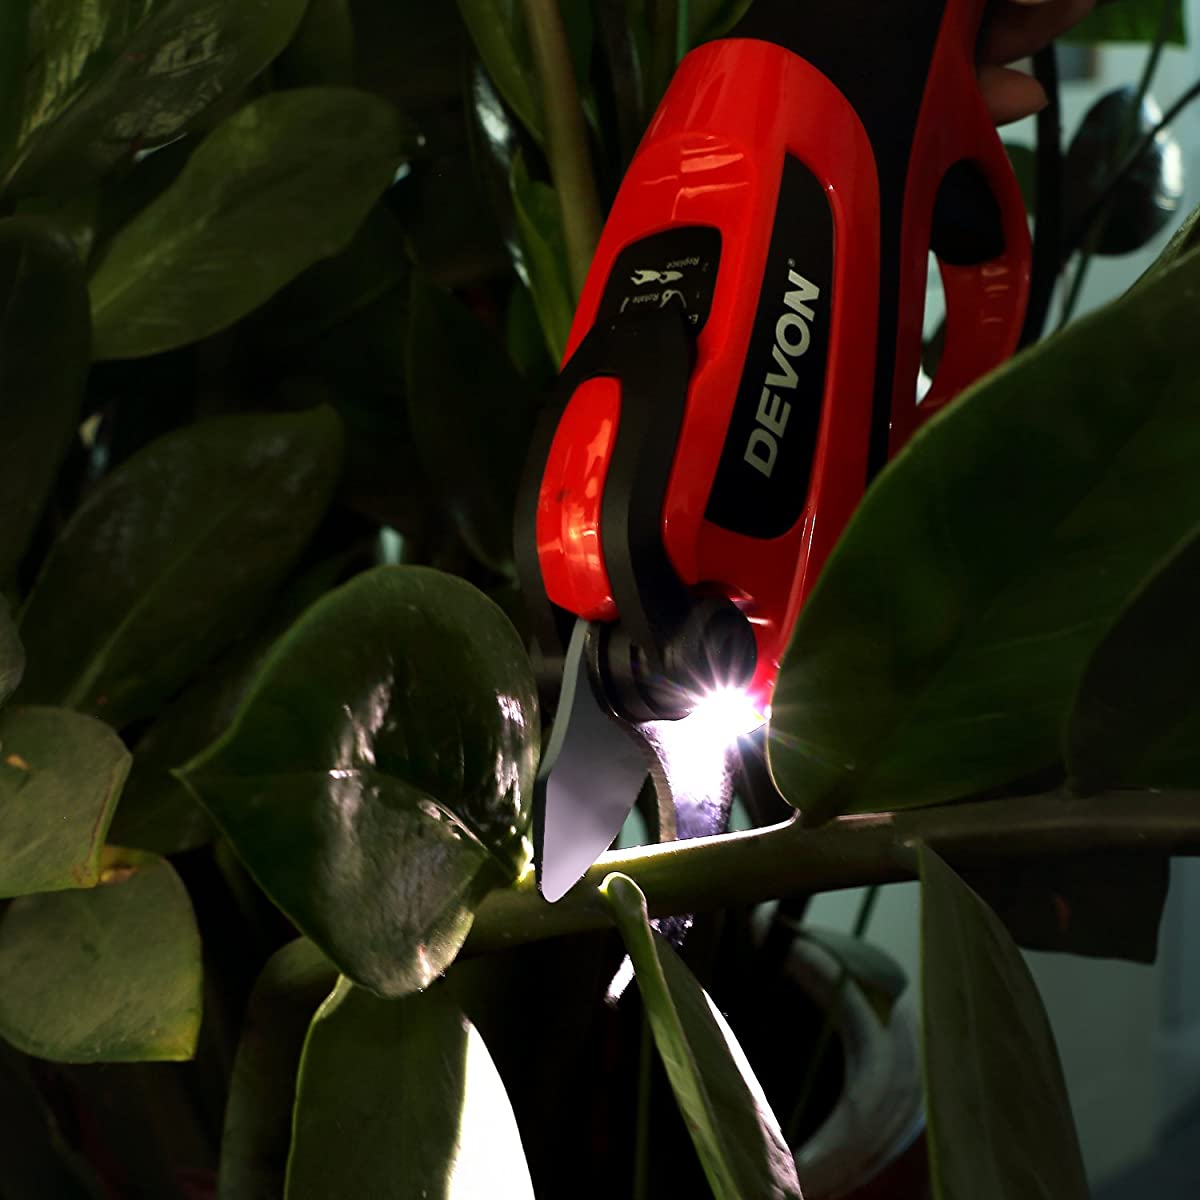 Electric Pruning Shears, Rechargeable Battery ,Cordless Professional Tree Trimmers Secateurs Cutting Scissors,One More Replacement Strong Blade for Garden, Rose, Apple Fruit Tree,Branches